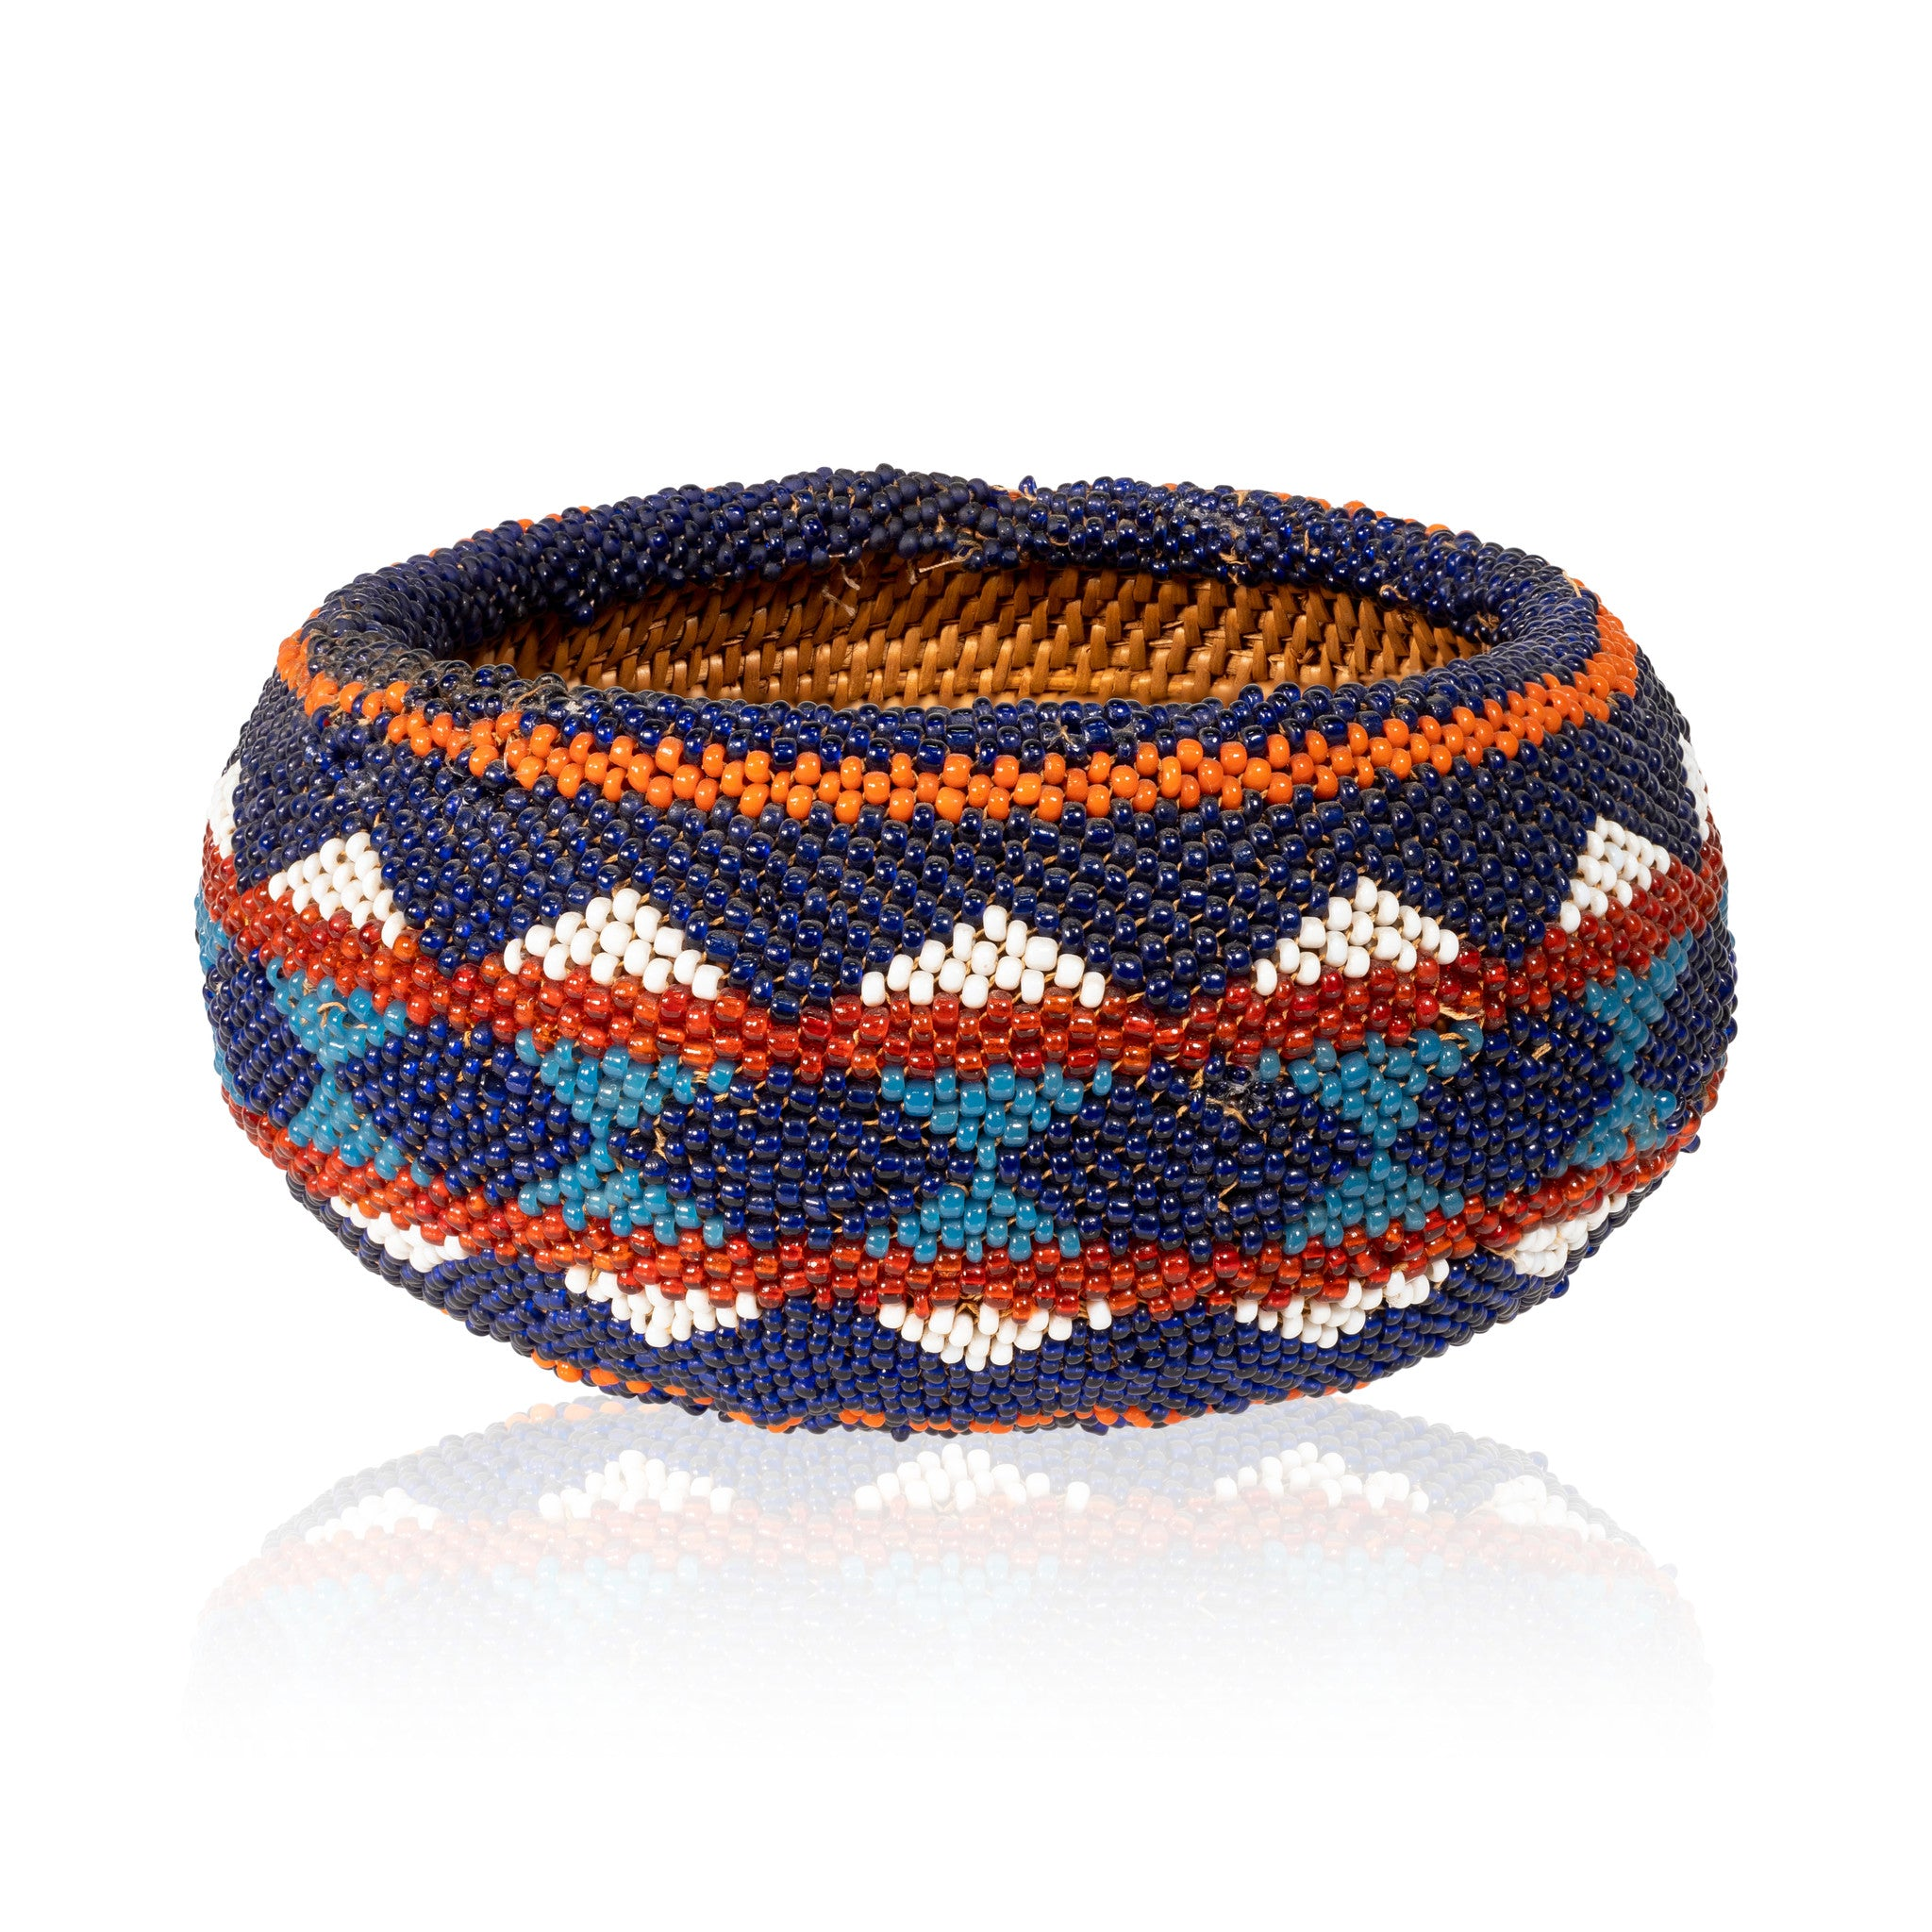 Beaded Washoe Basket american indian: basketry: other, baskets, beadwork, washoe